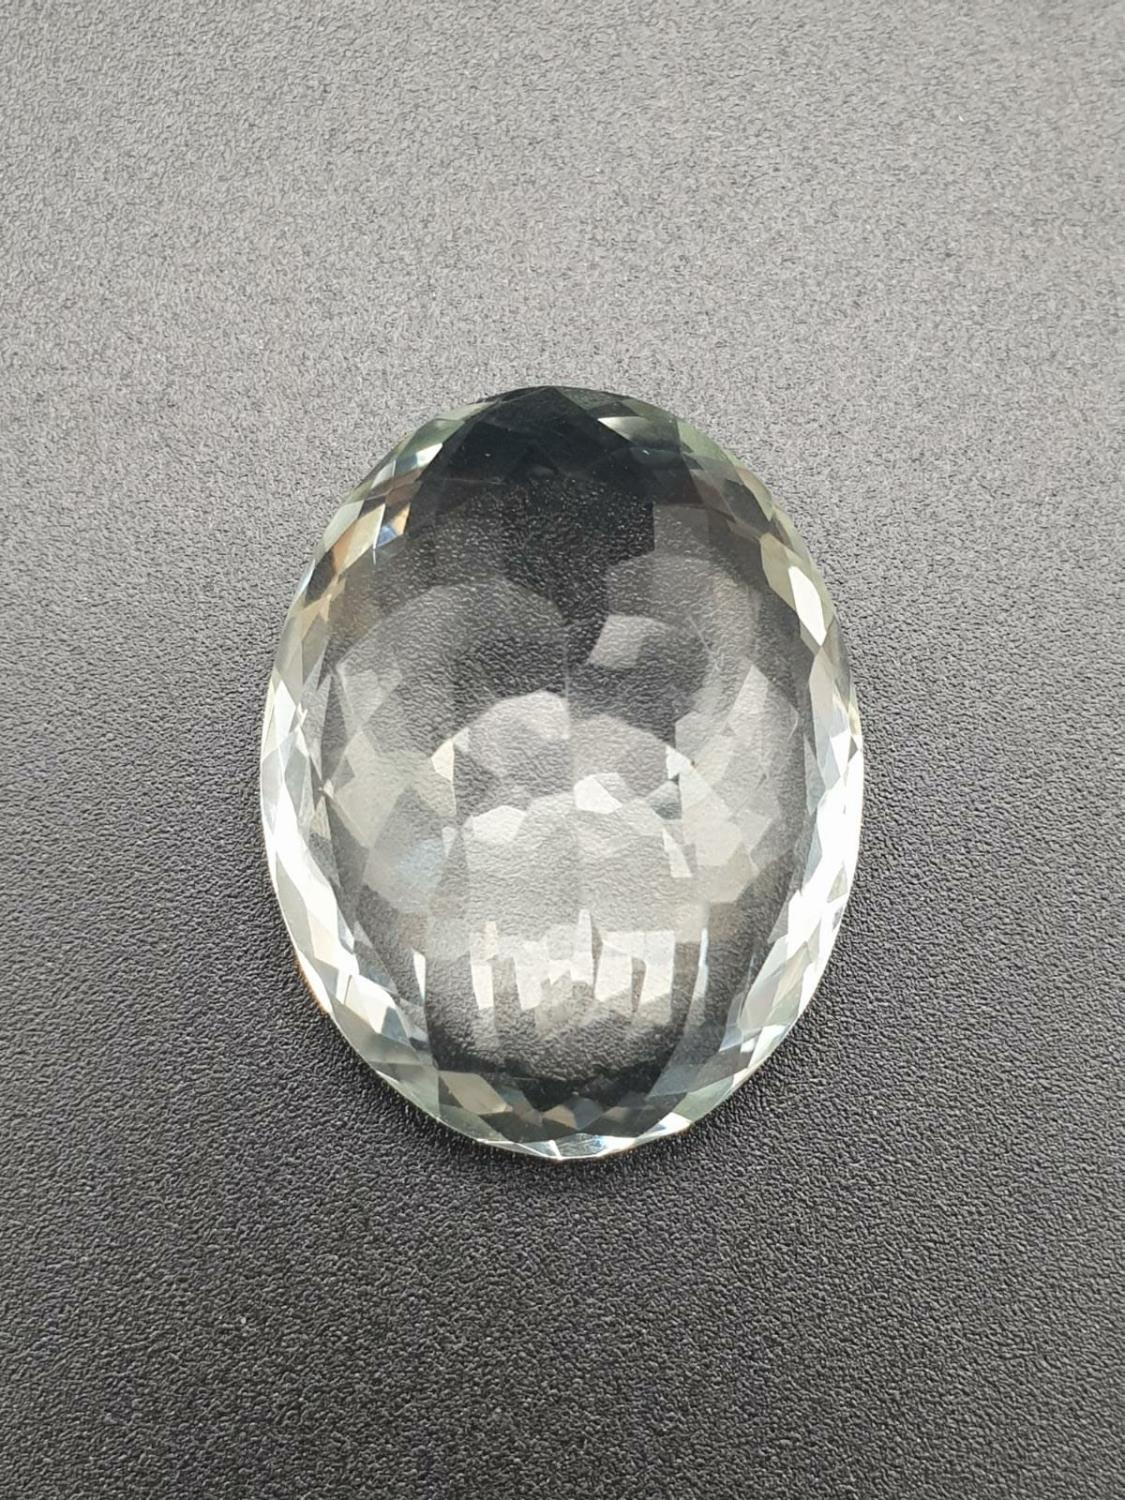 45.39 Cts Praseolite Gemstone. Oval shape. ITLGR certified - Image 3 of 4